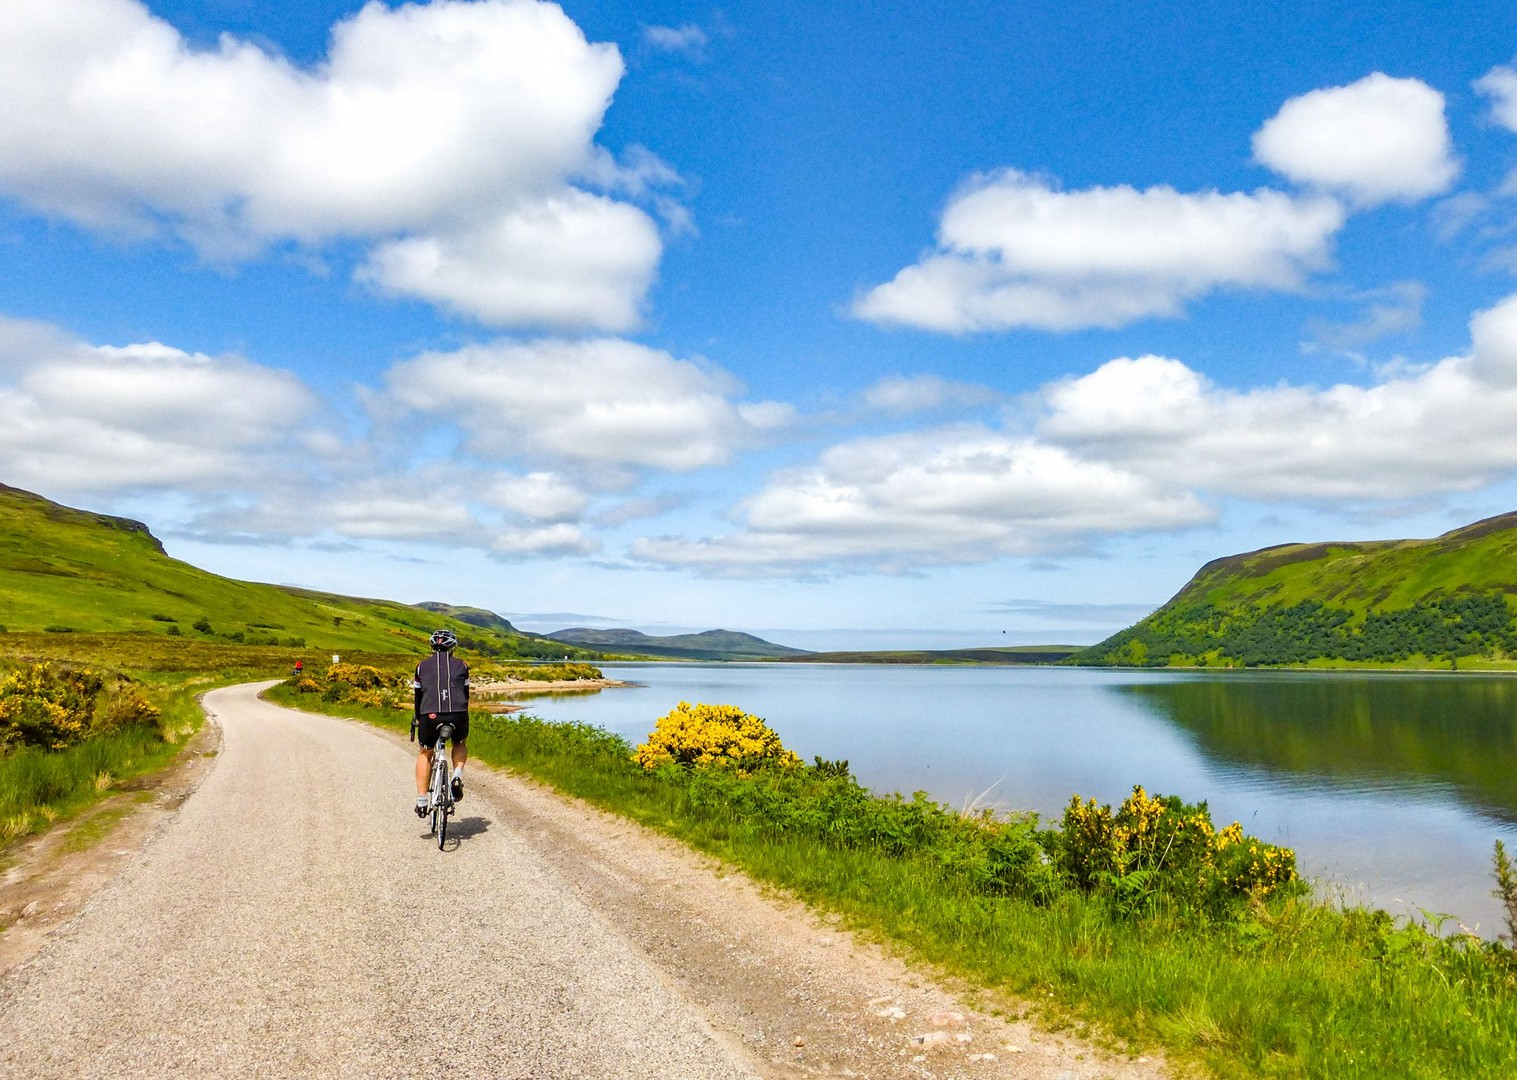 lands-end-to-john-ogroats-16-day-cycling-holiday-guided-saddle-skedaddle.jpg - UK - Land's End to John O'Groats Classic (16 days) - Guided Road Cycling Holiday - Road Cycling